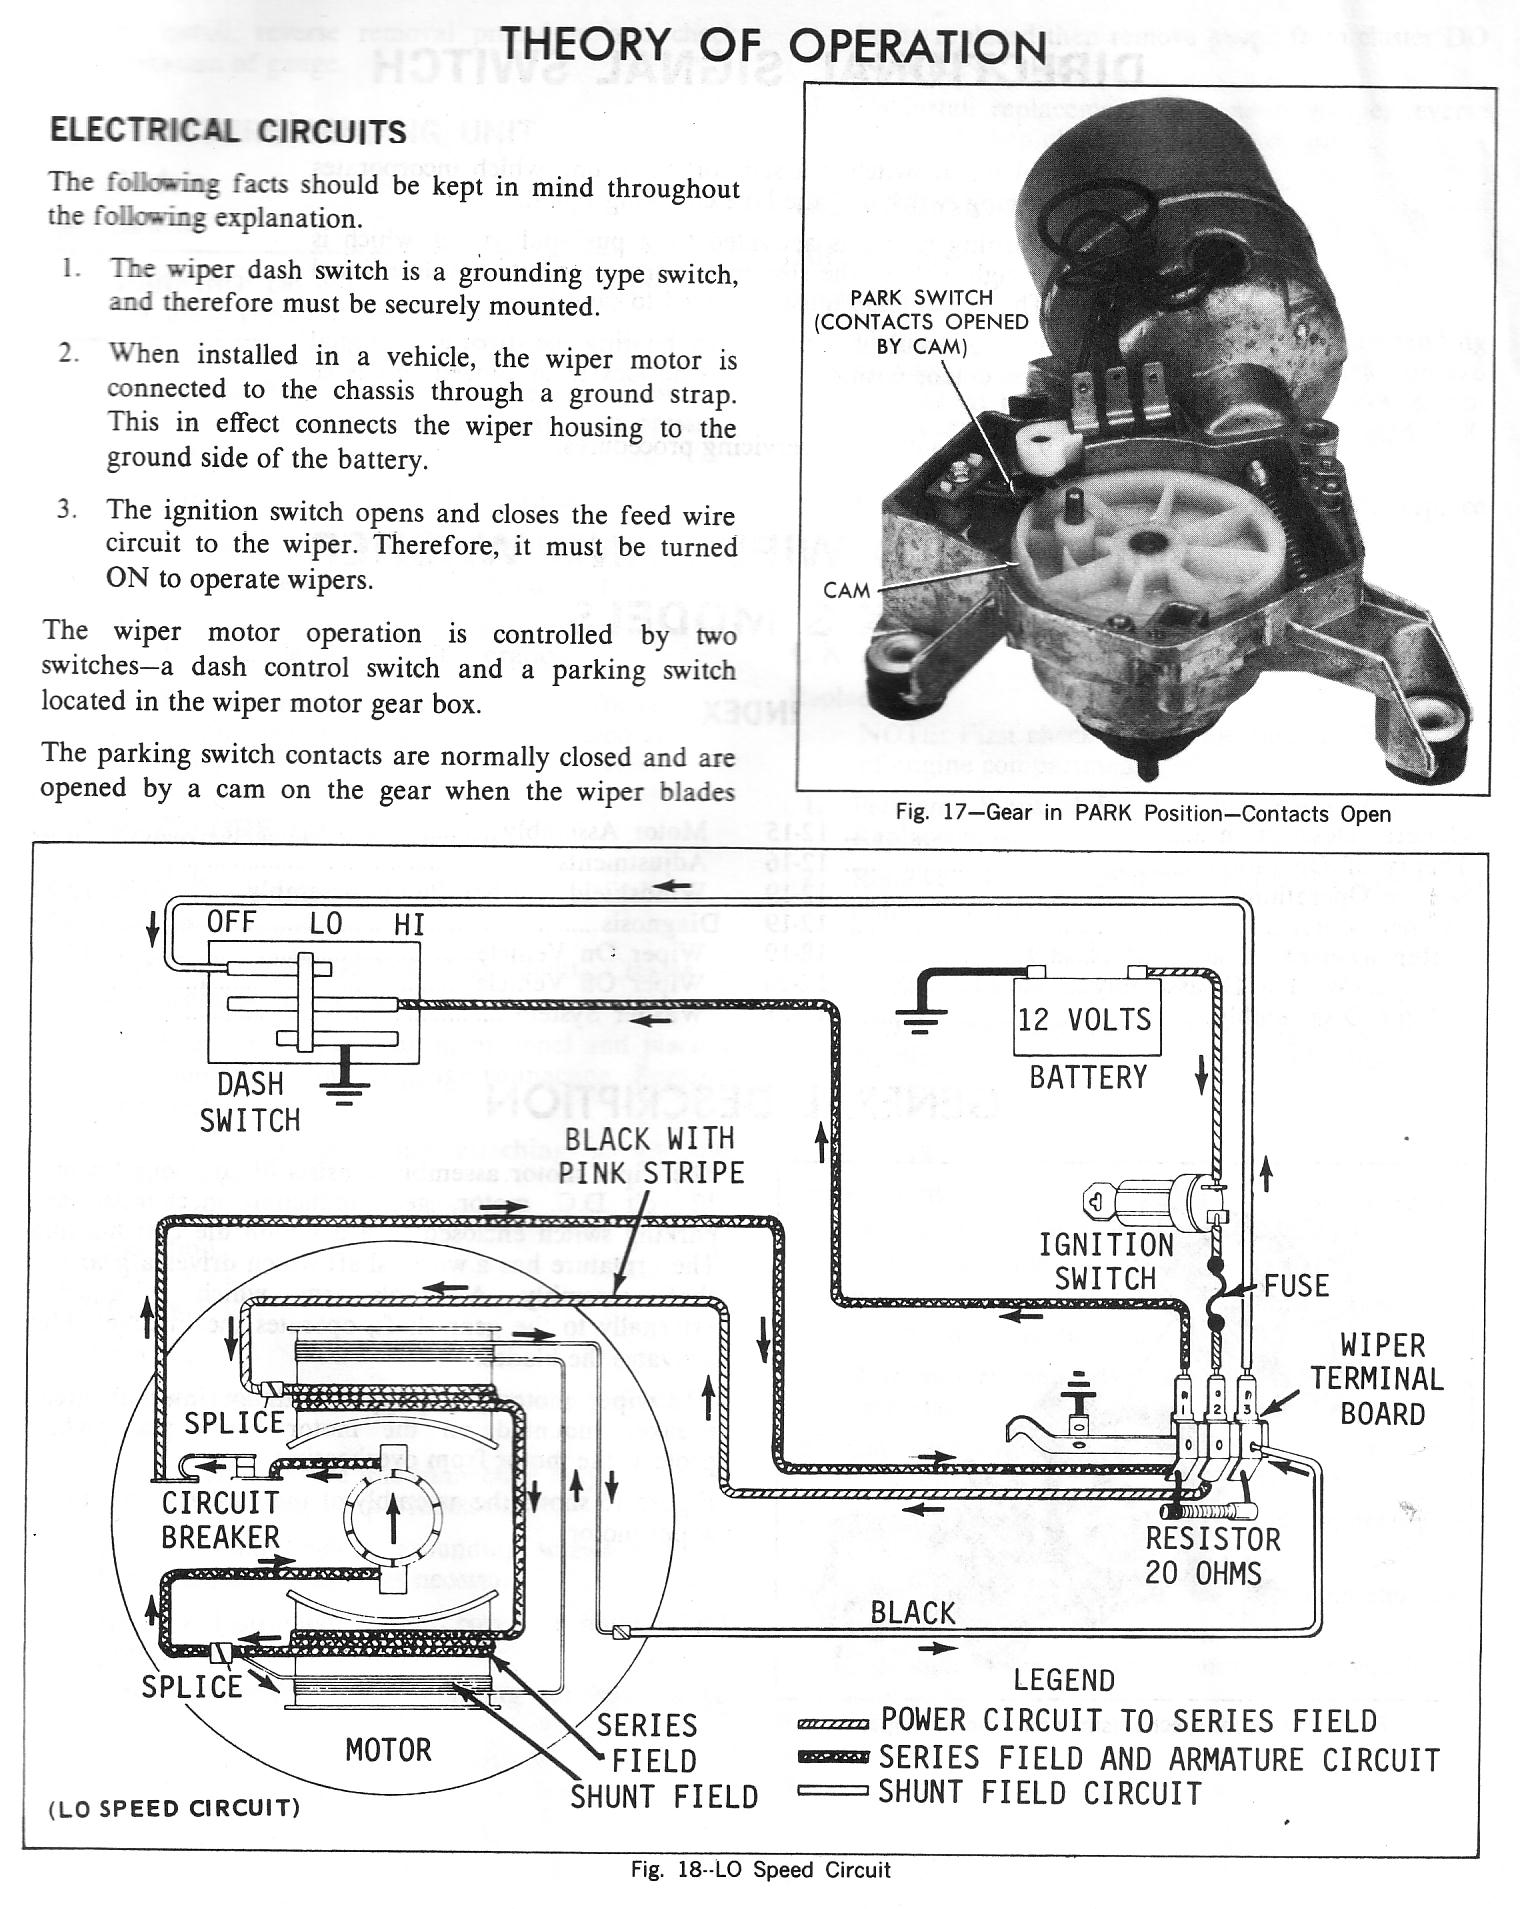 66 Chevy Wiring Diagram 65 Chevy C10 Wire Diagram Wiring